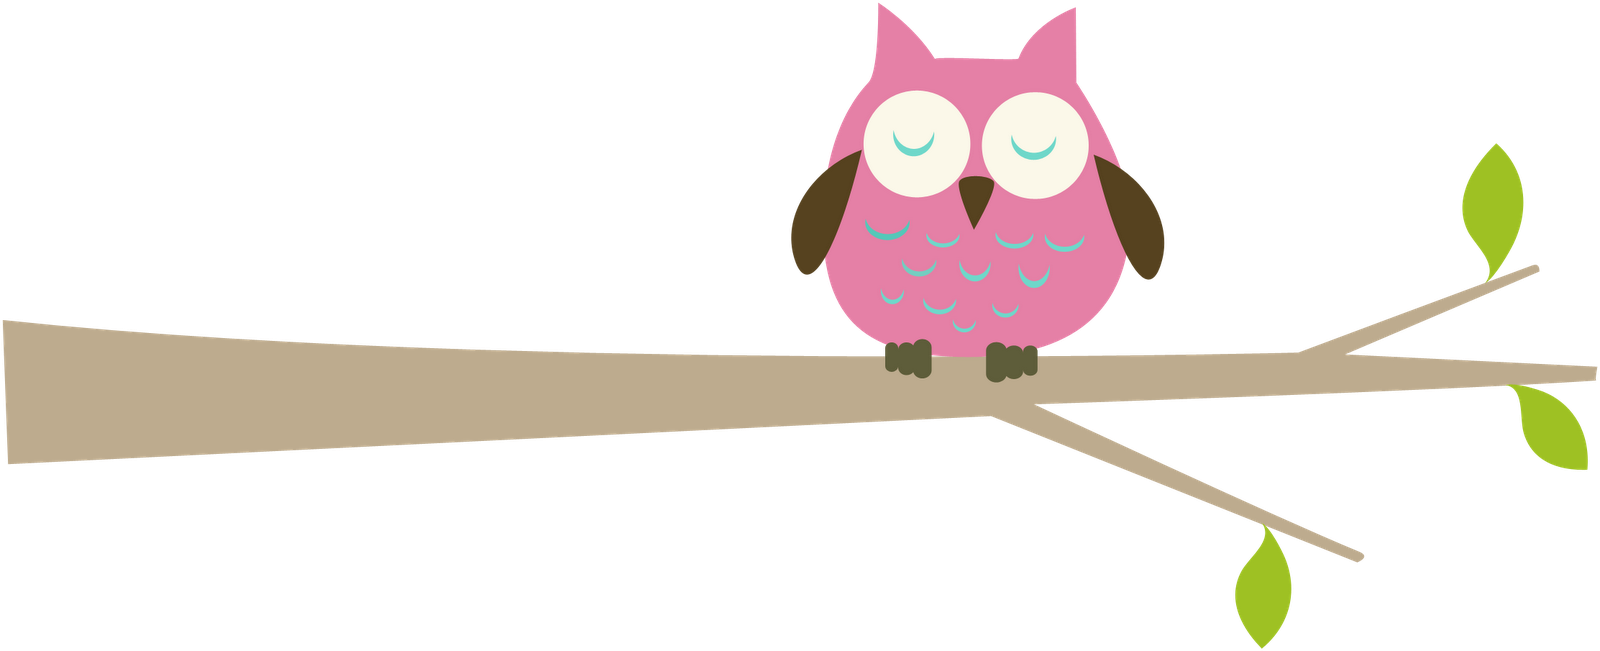 owl borders clip art cliparts co ipexyp clipart png 1600 651 rh pinterest com owl on branch clip art free pink owl on branch clip art